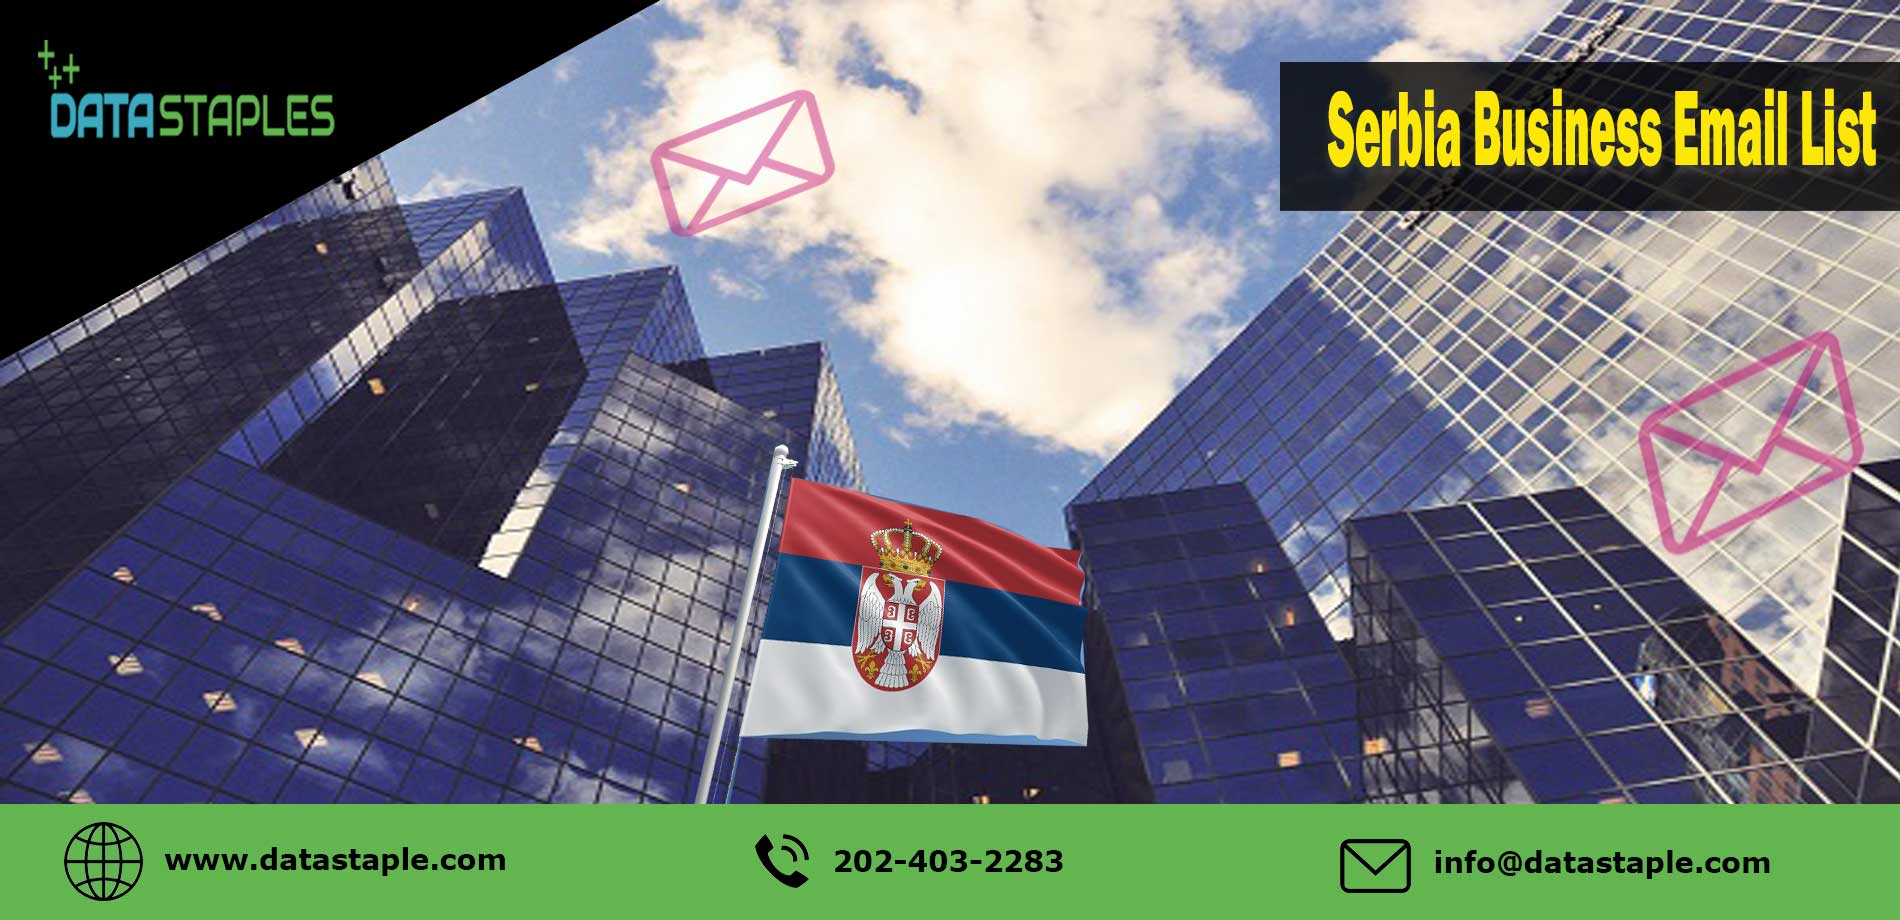 Serbia Business Email List | DataStaples